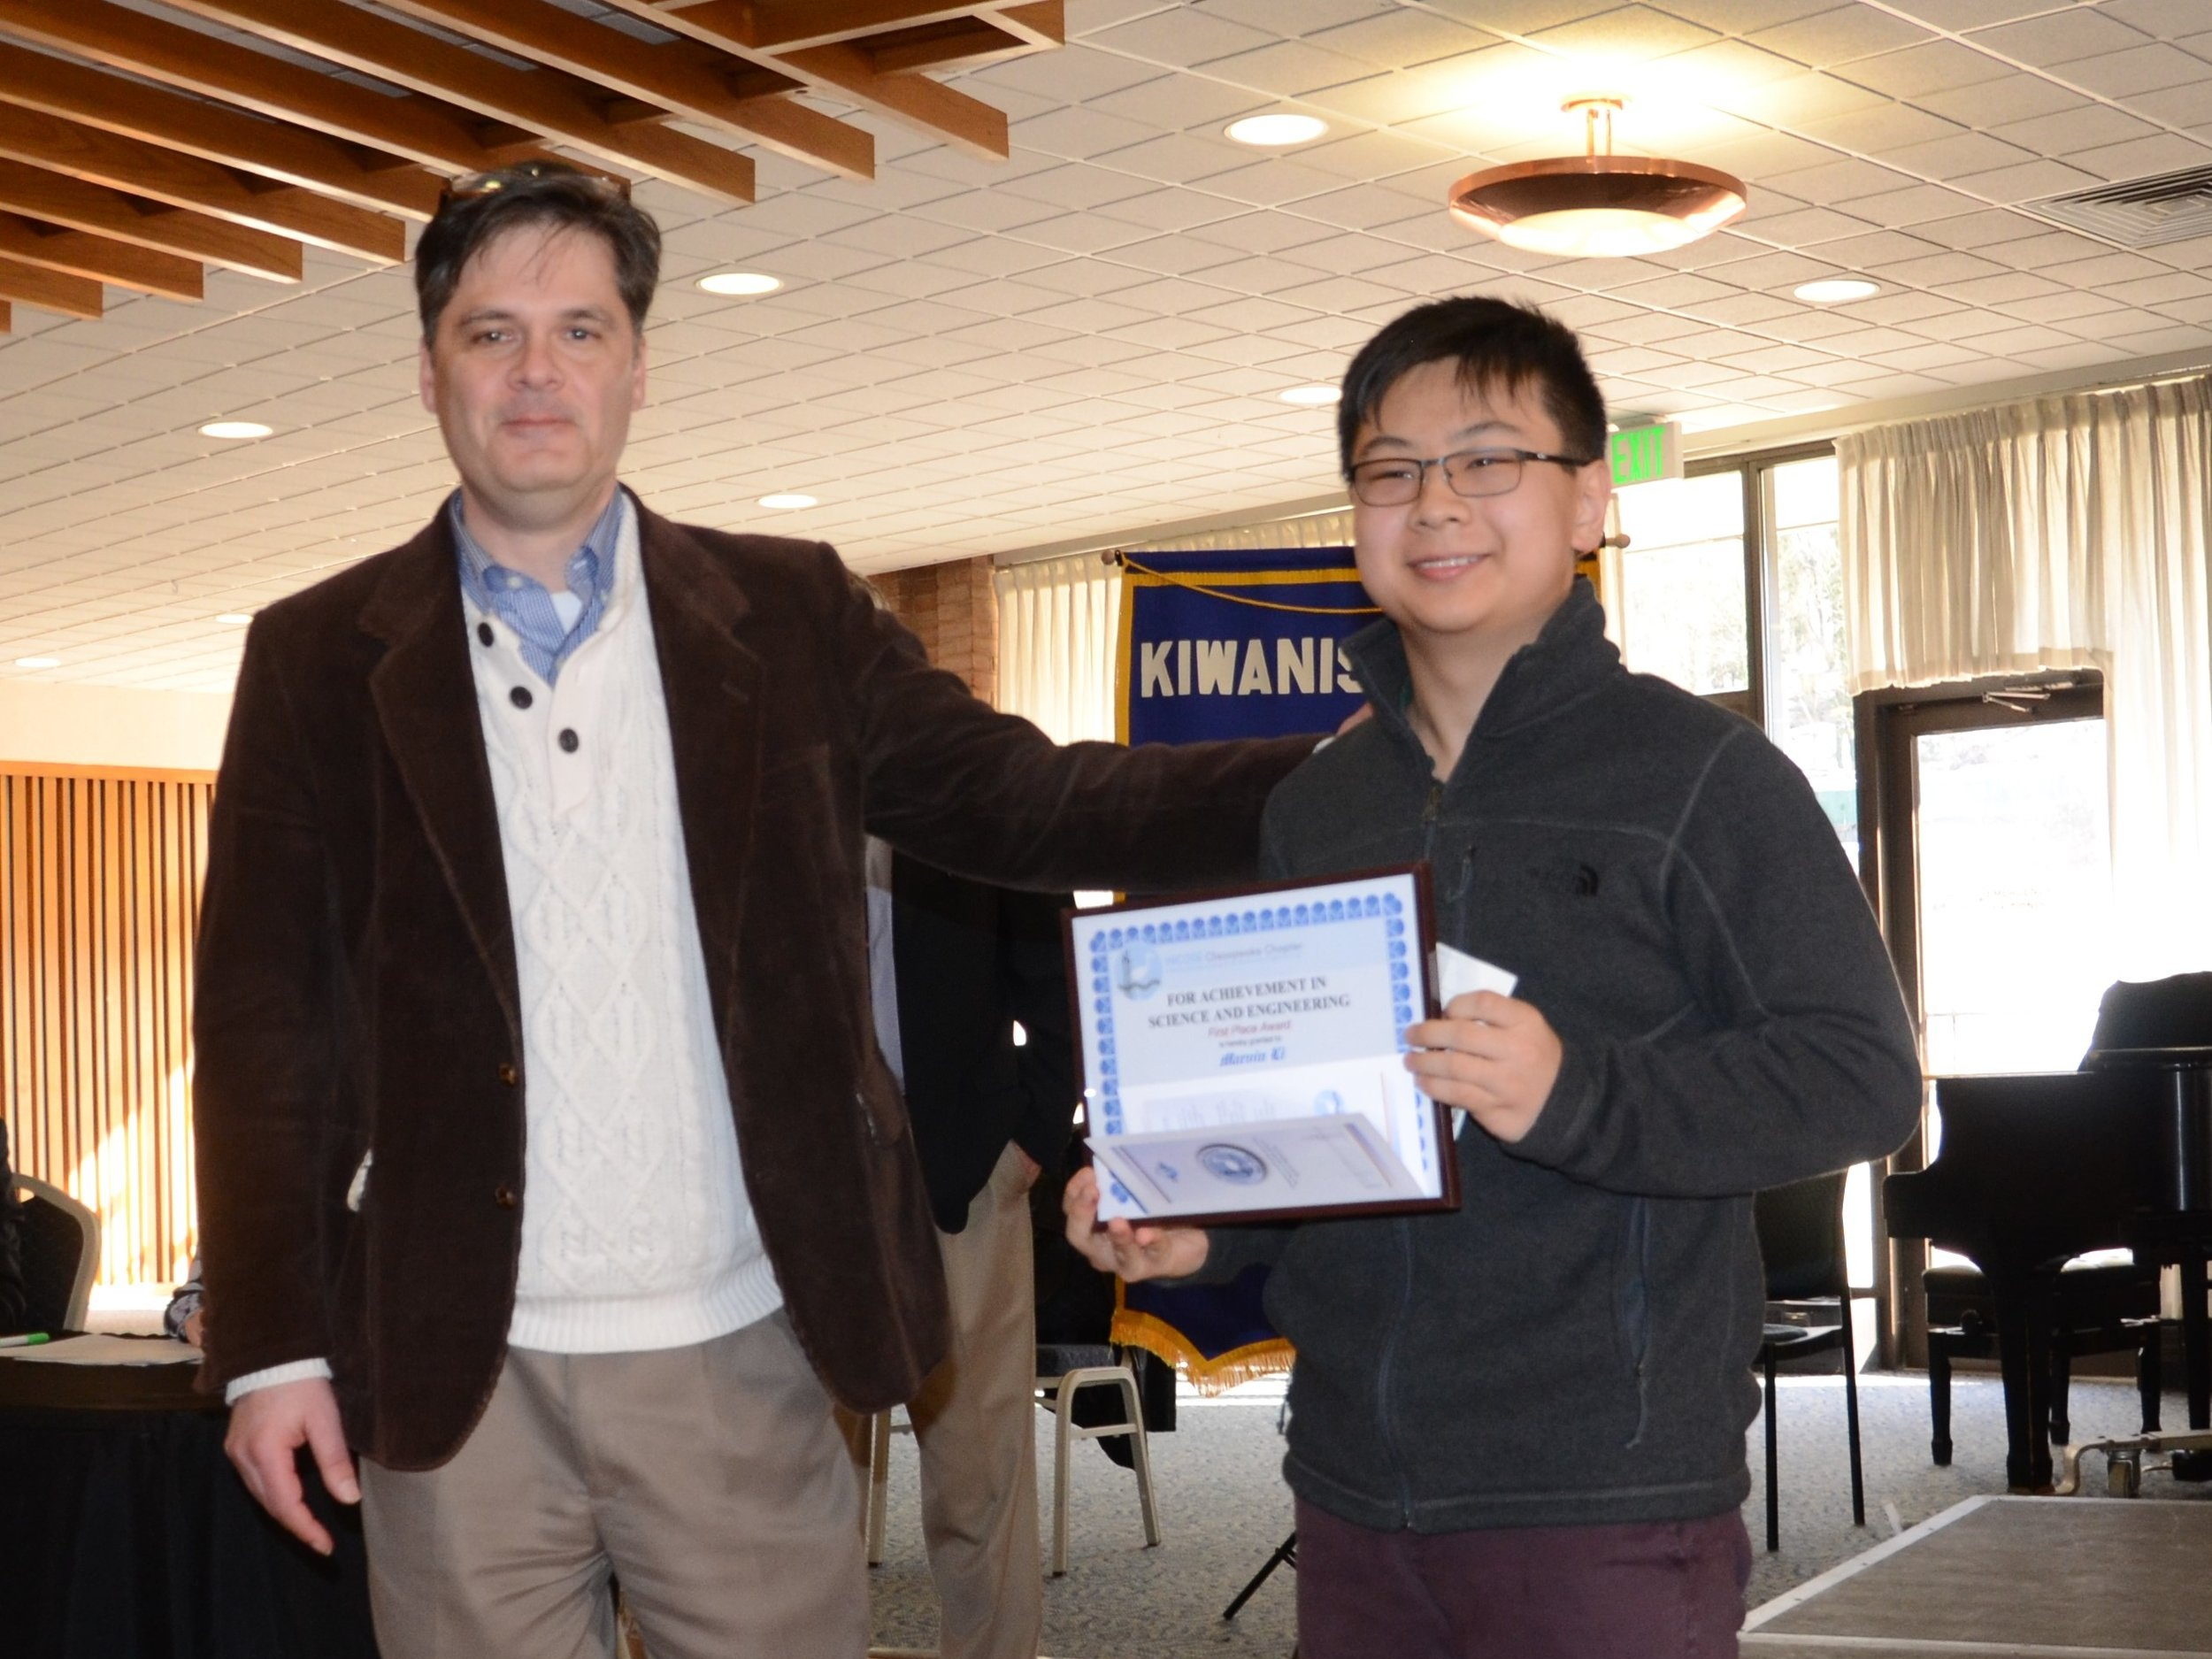 1st Place, Marvin Li: Machine Learning Algorithms and Generalized Linear Model for Satellite Remote Sensing of Ocean Color Chlorophyll in Case 2 Waters